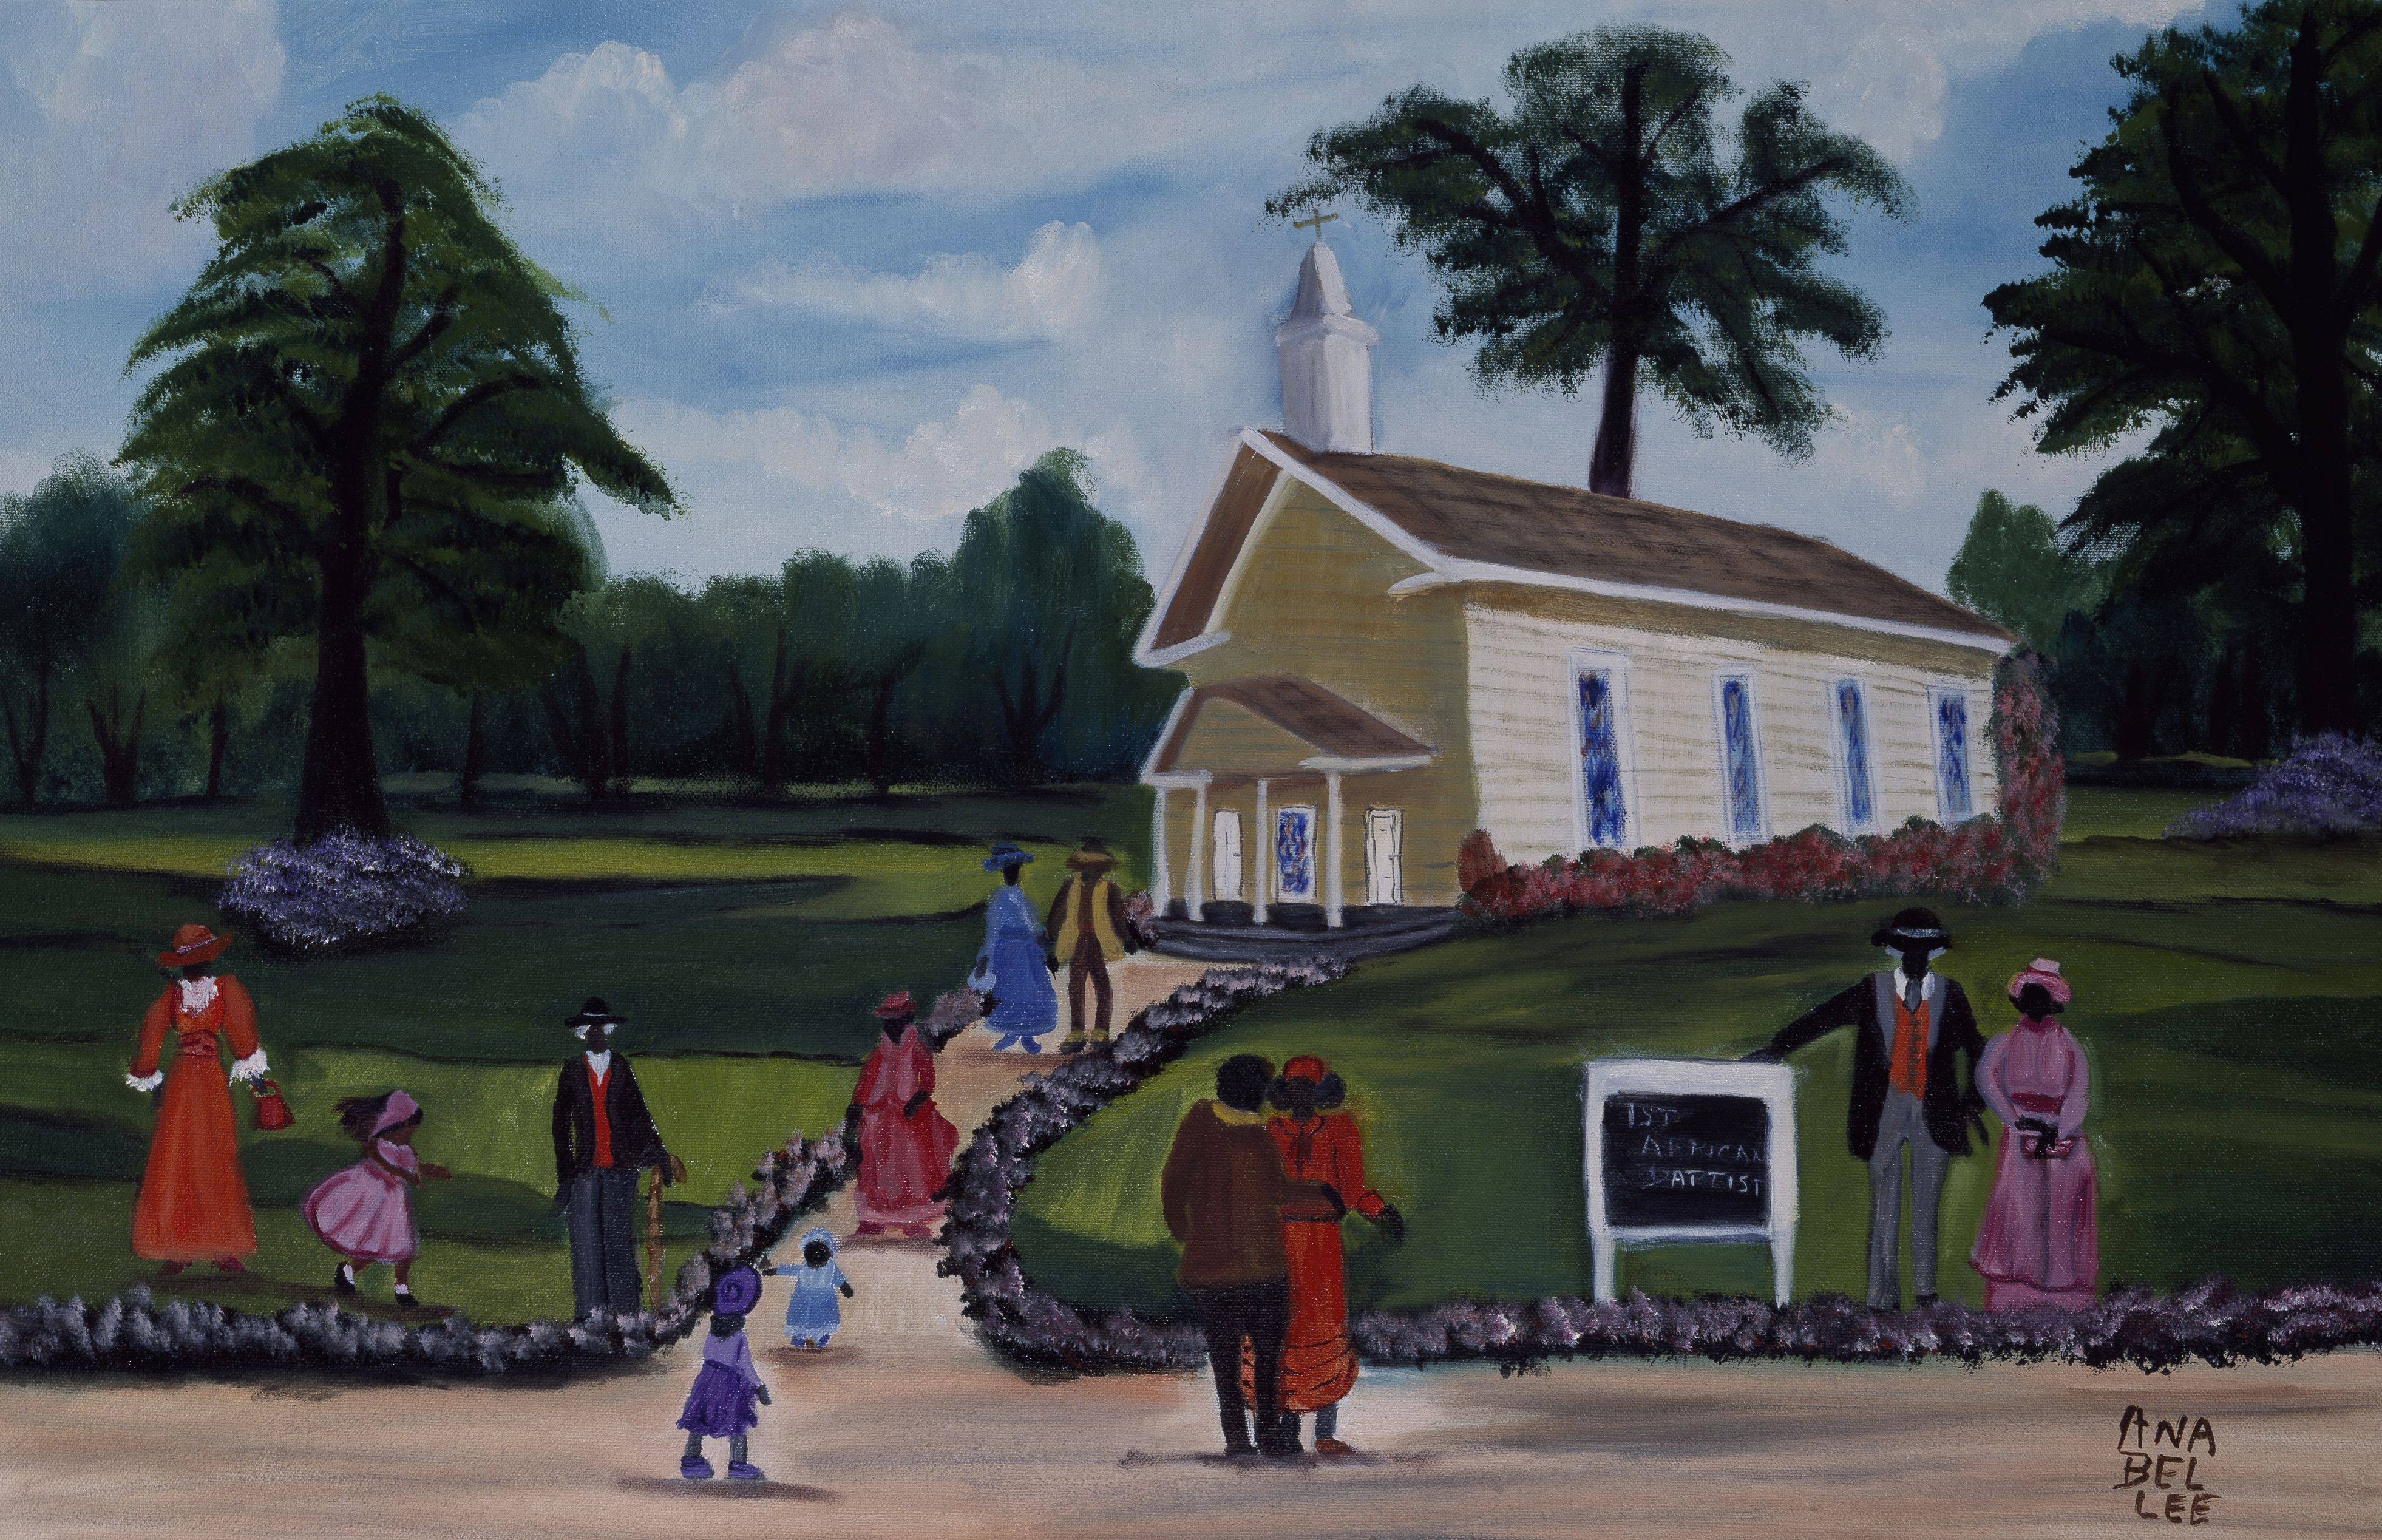 Yesteryear by Anna Belle Lee Washington, oil painting, 1993